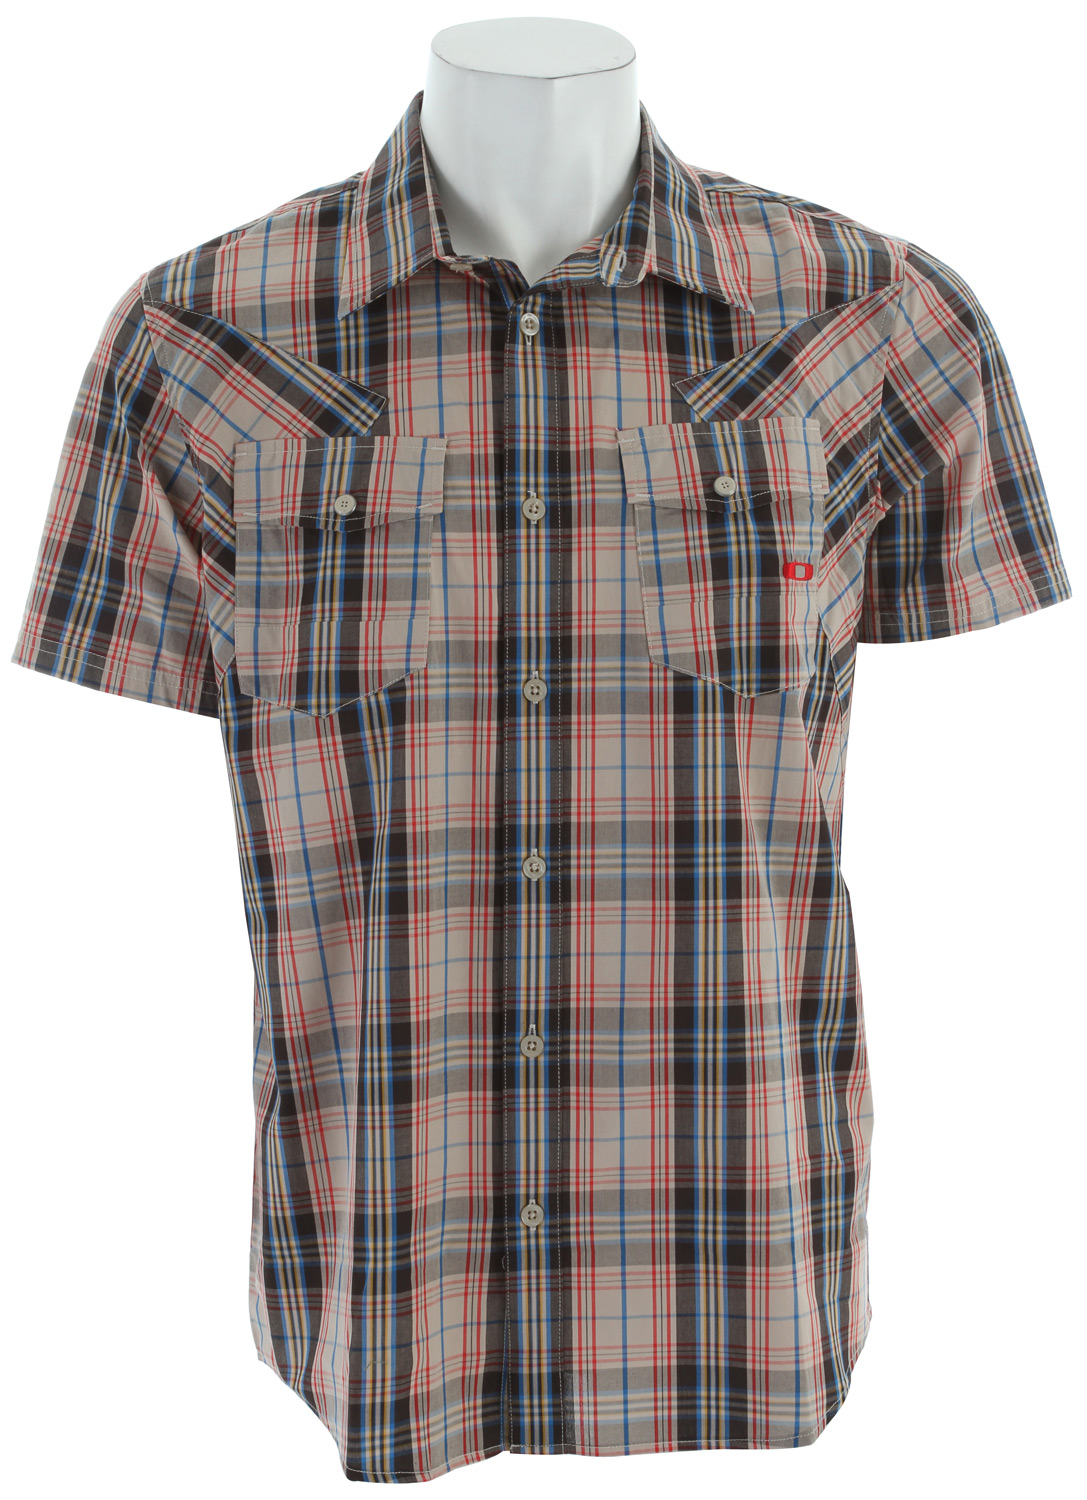 Yarn dye plaid woven shirt with button placket, engineered panel seams, chest pockets, front embroidery and back flag.Key Features of the Oakley O Western Shirt: 100% cotton Regular fit - $34.95